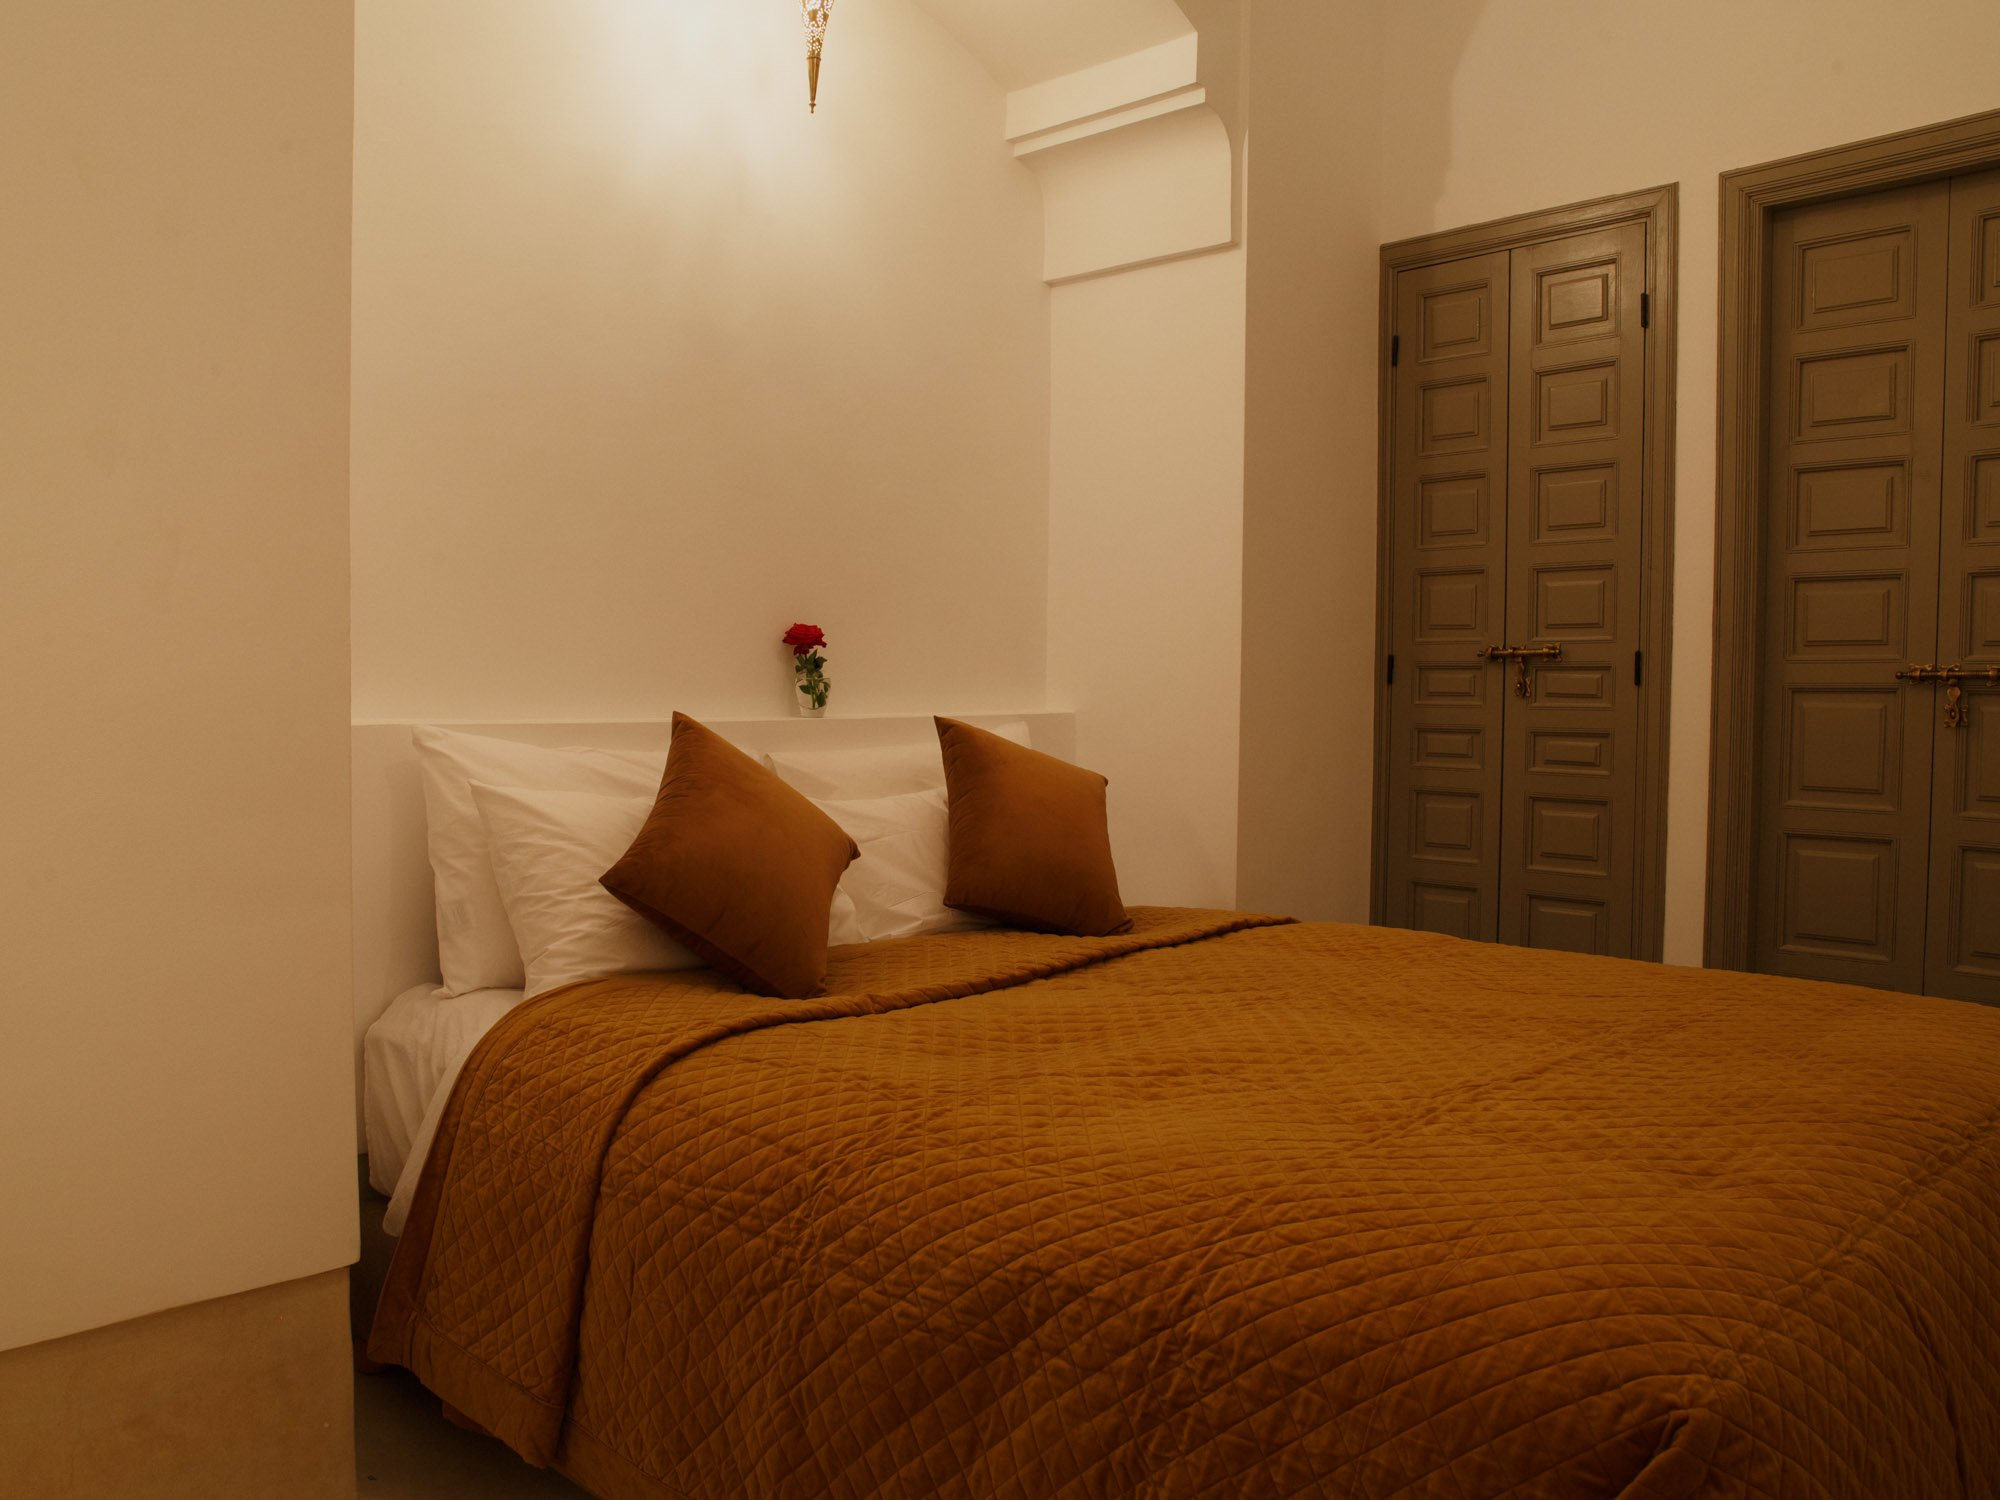 Riad Hotel bedroom, double bed and pillows, brown quilted top blanket, fitted wardrobes, Morocco